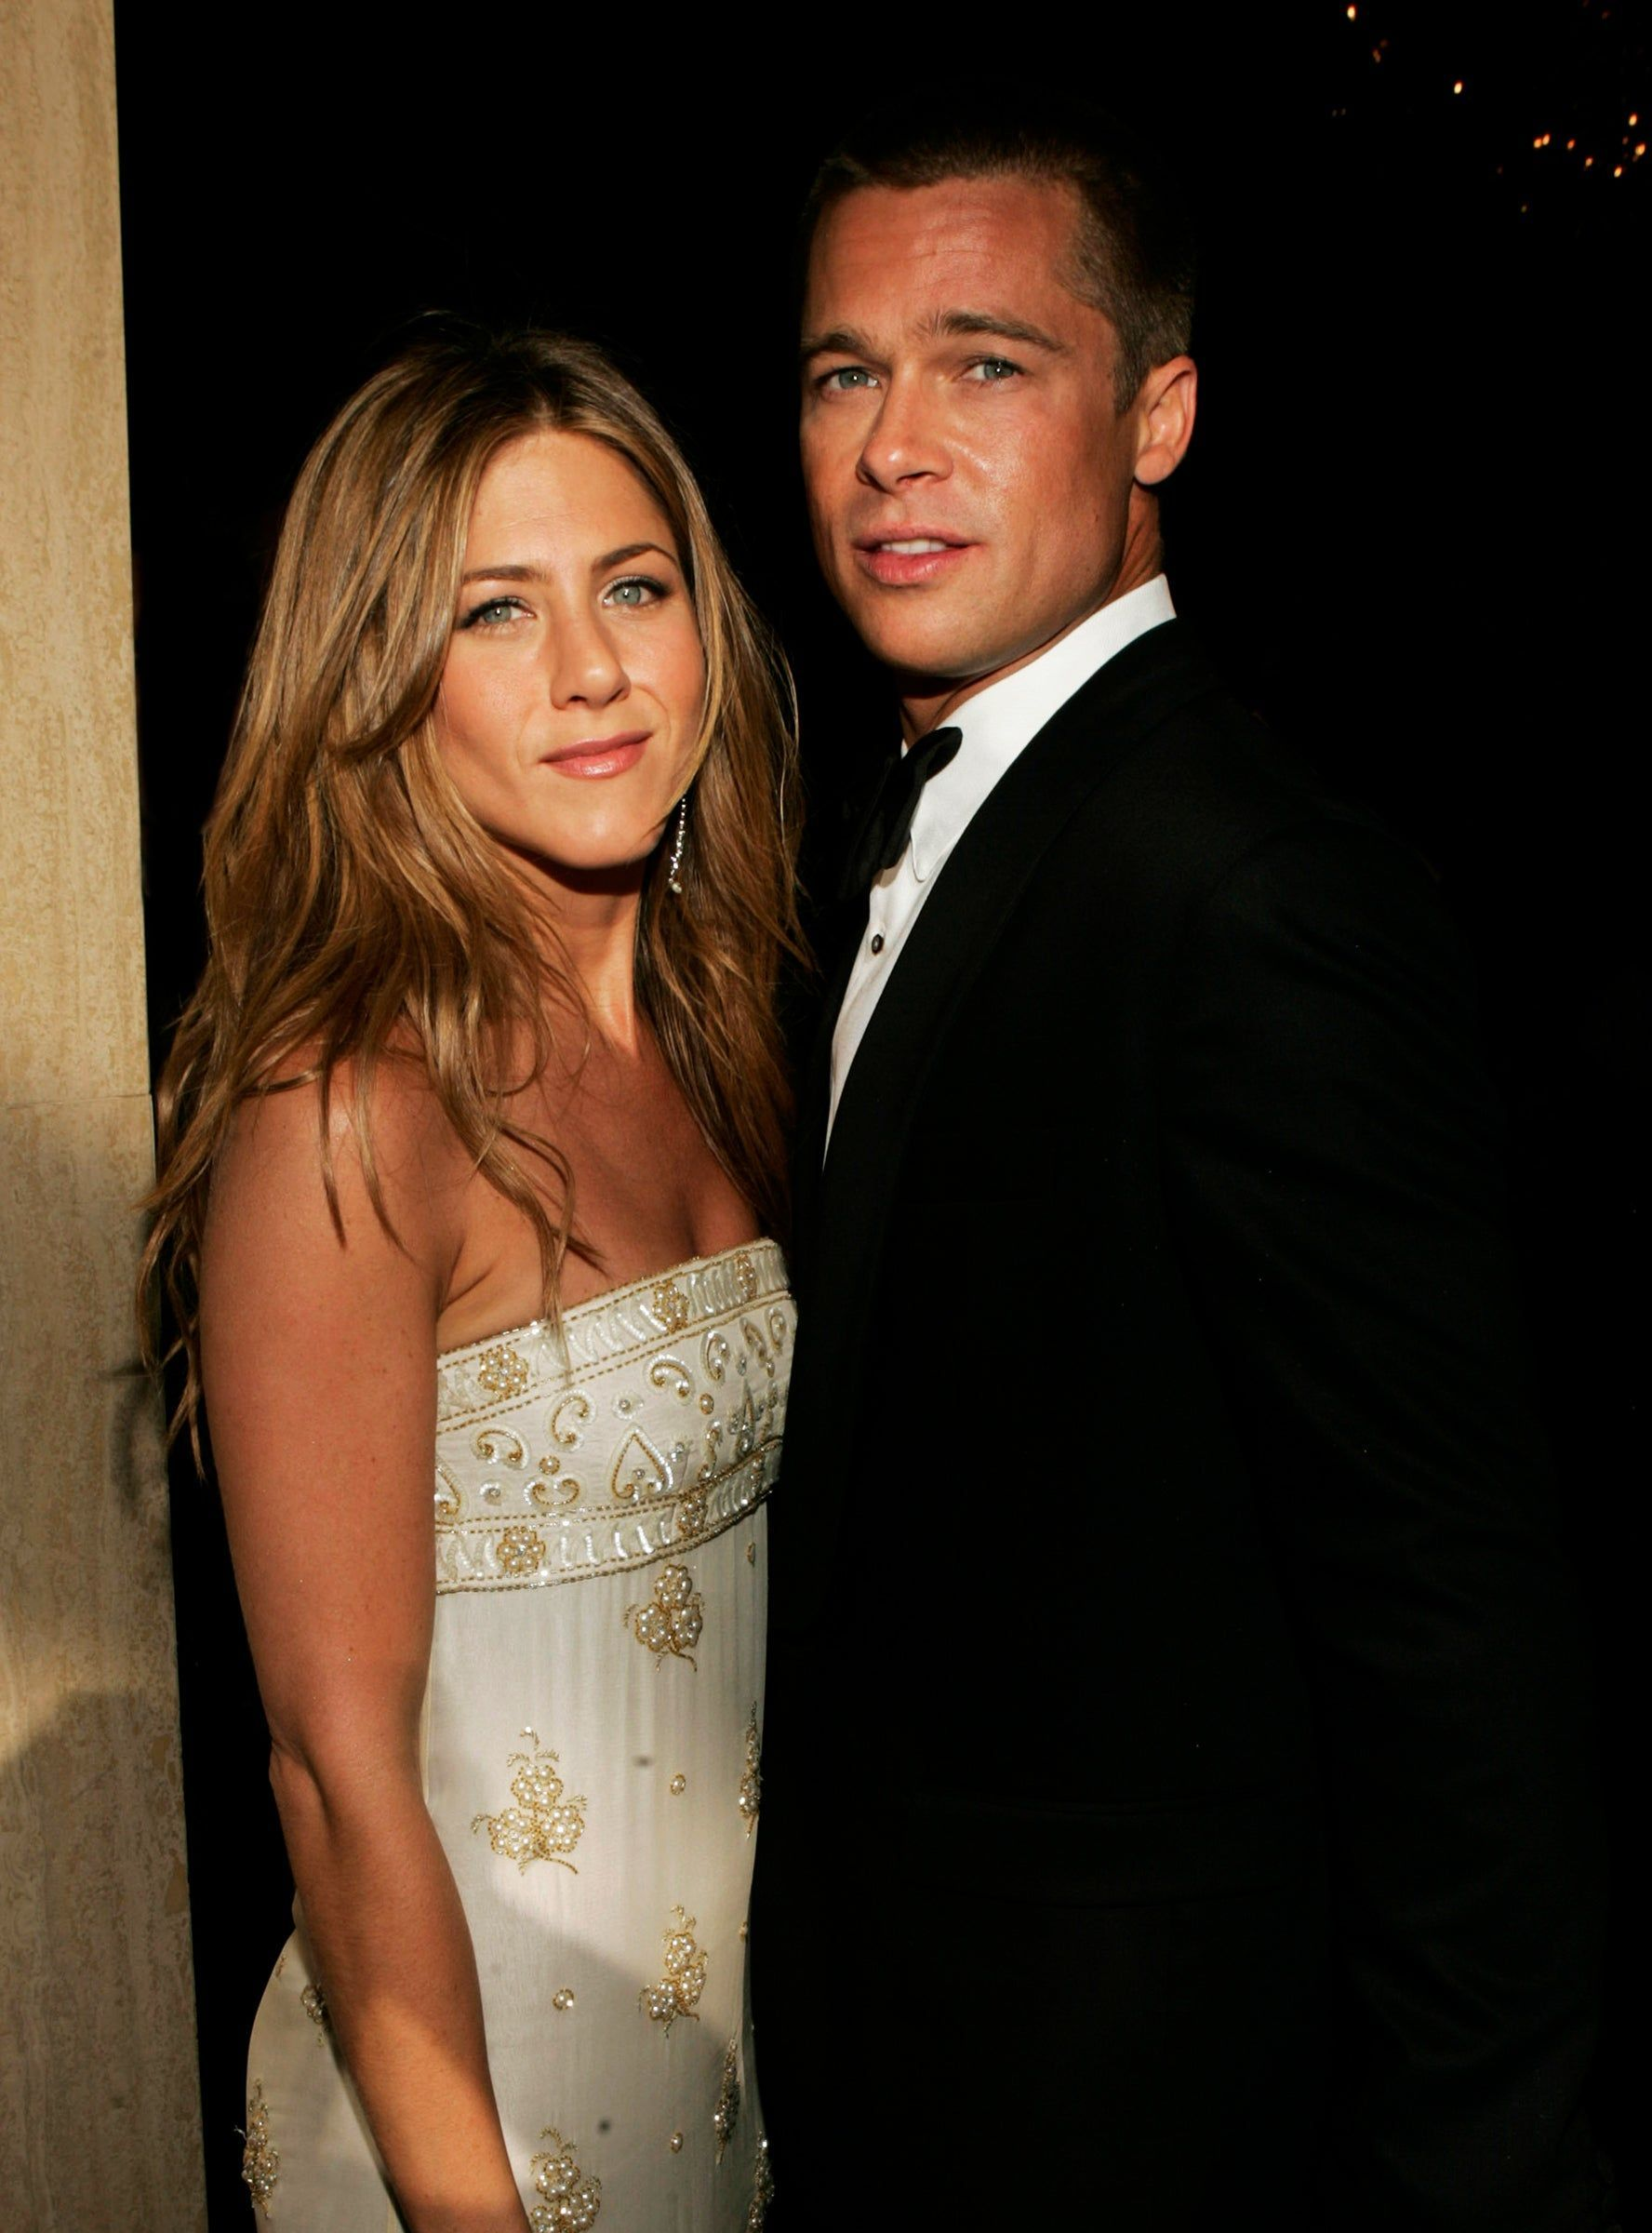 Jennifer Aniston And Brad Pitt Got Together To Celebrate The Holidays In 2020 Brad Pitt And Jennifer Brad Pitt Jennifer Aniston Jennifer Aniston Wedding